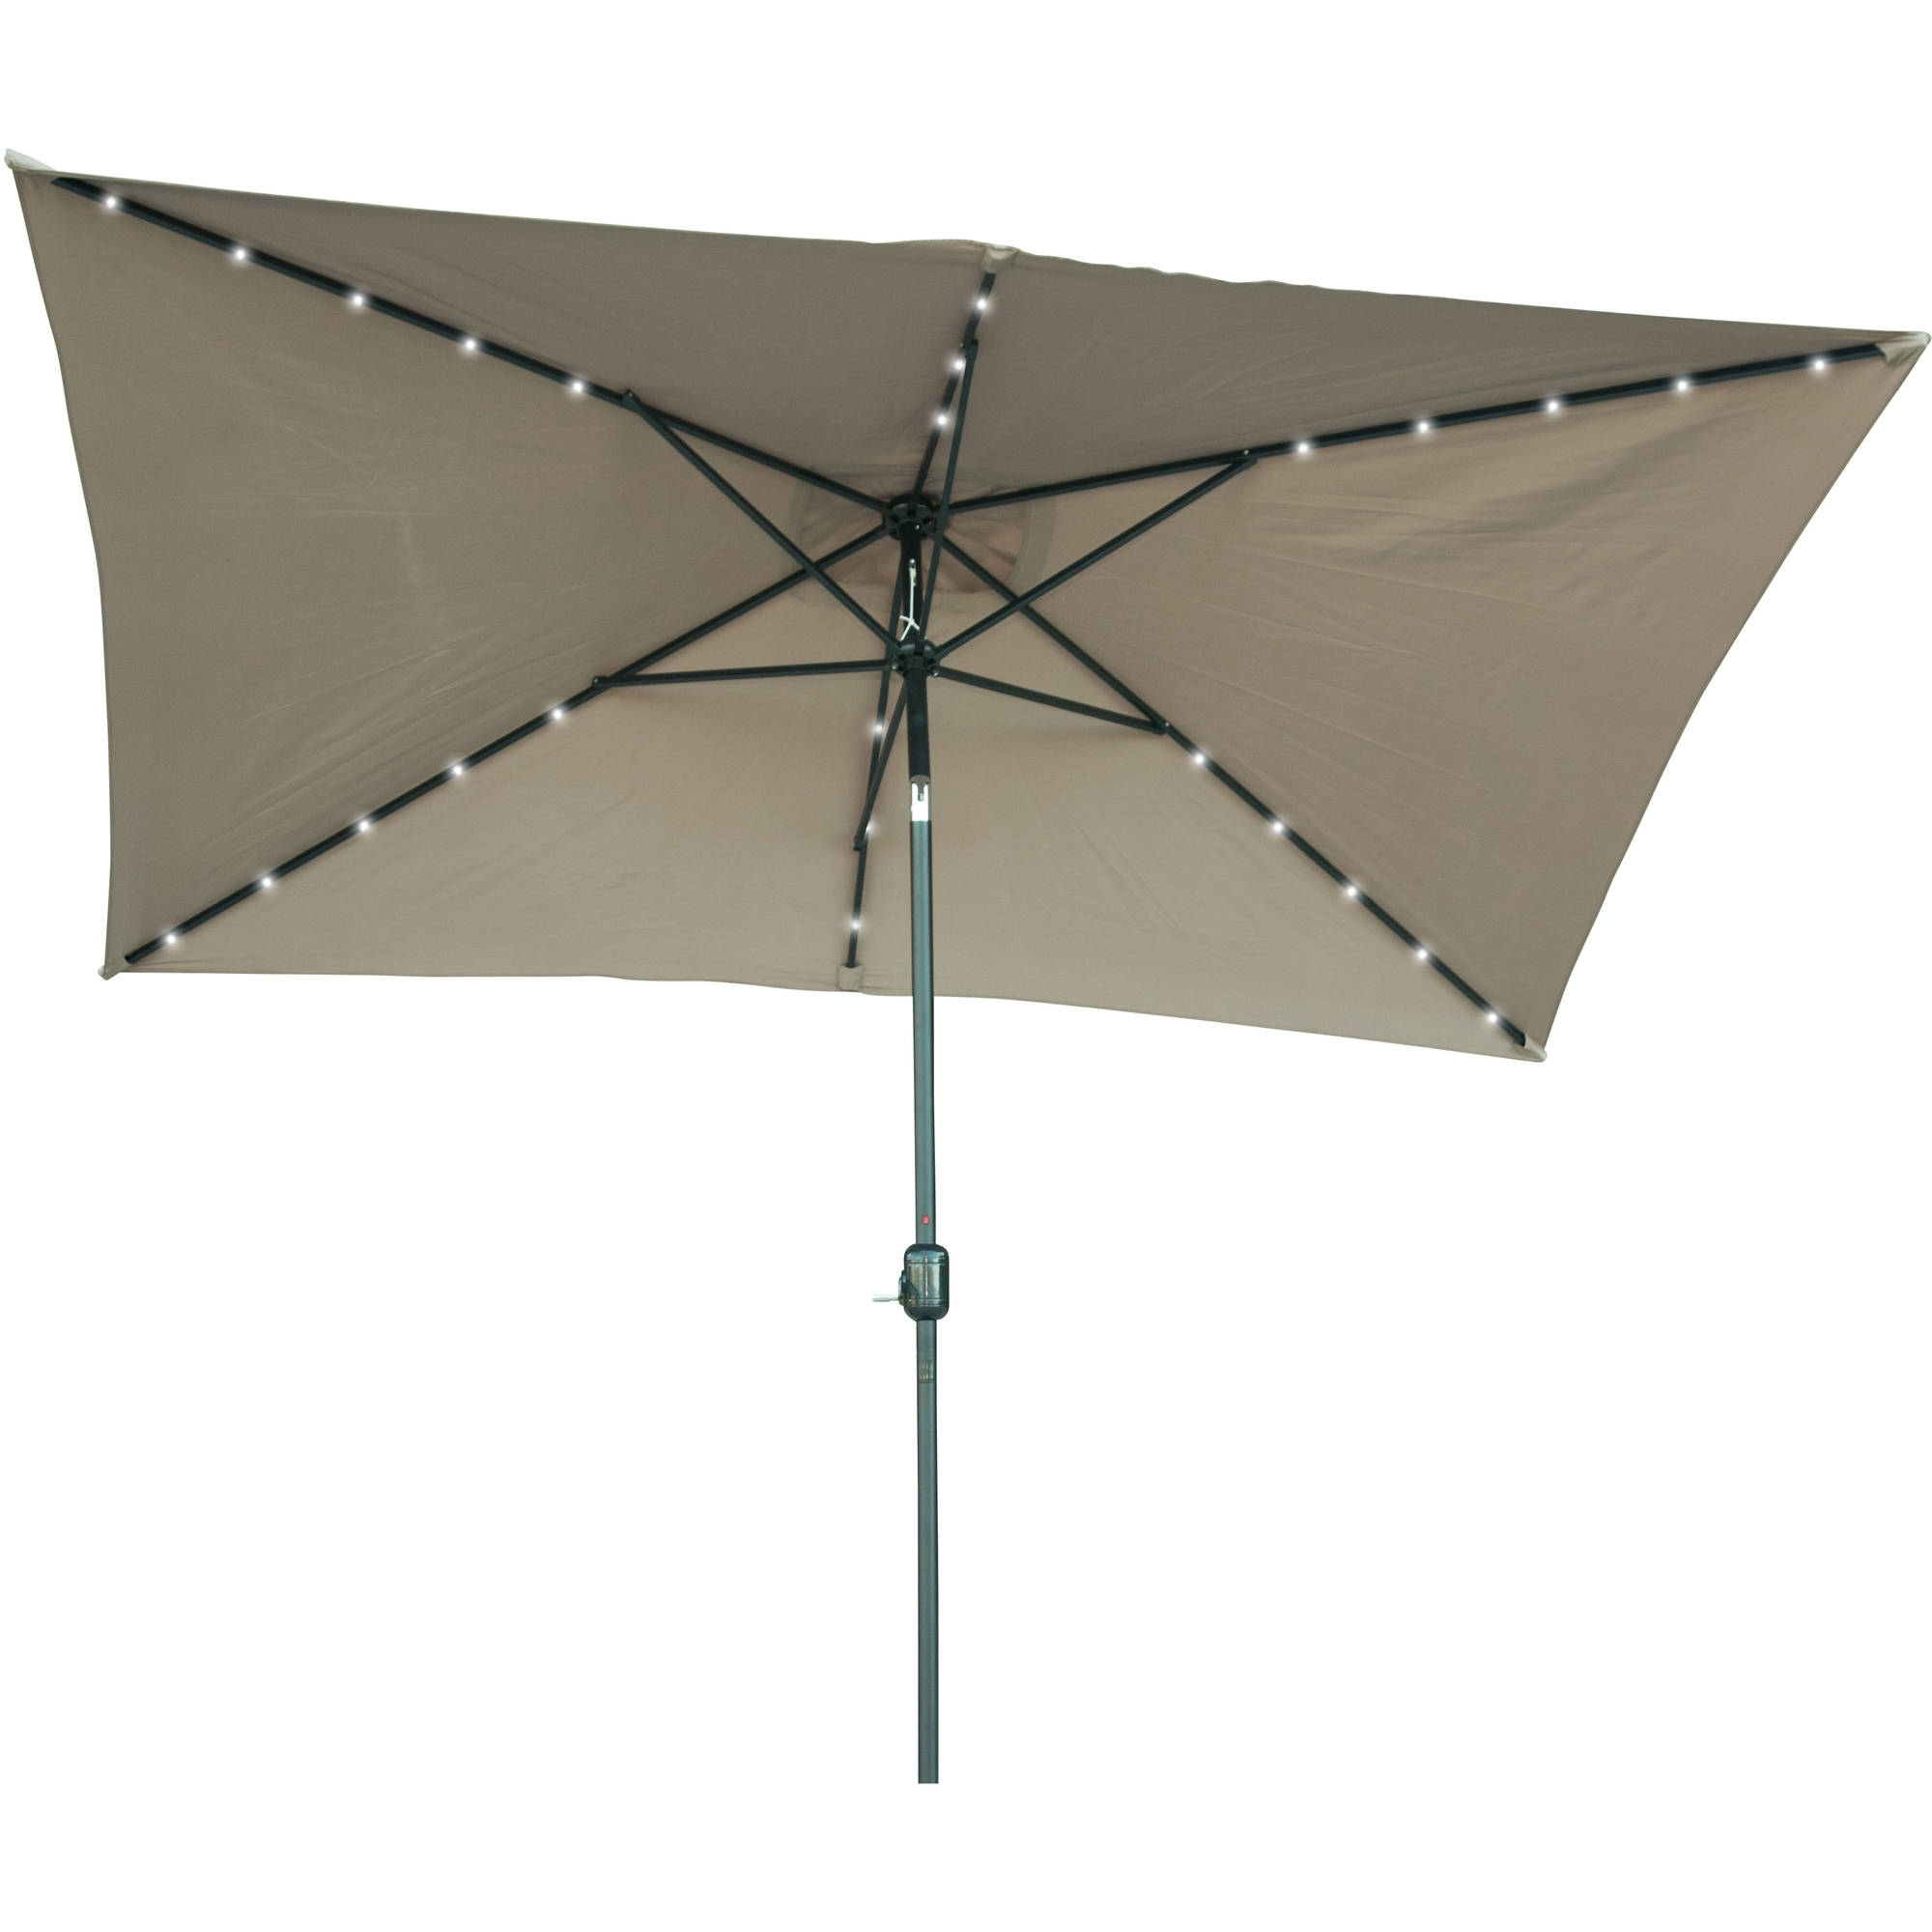 Patio Umbrellas With White Pole Intended For Well Known Walmart Umbrellas Patio Elegant Redtio Umbrellas Sale Walmart (View 16 of 20)